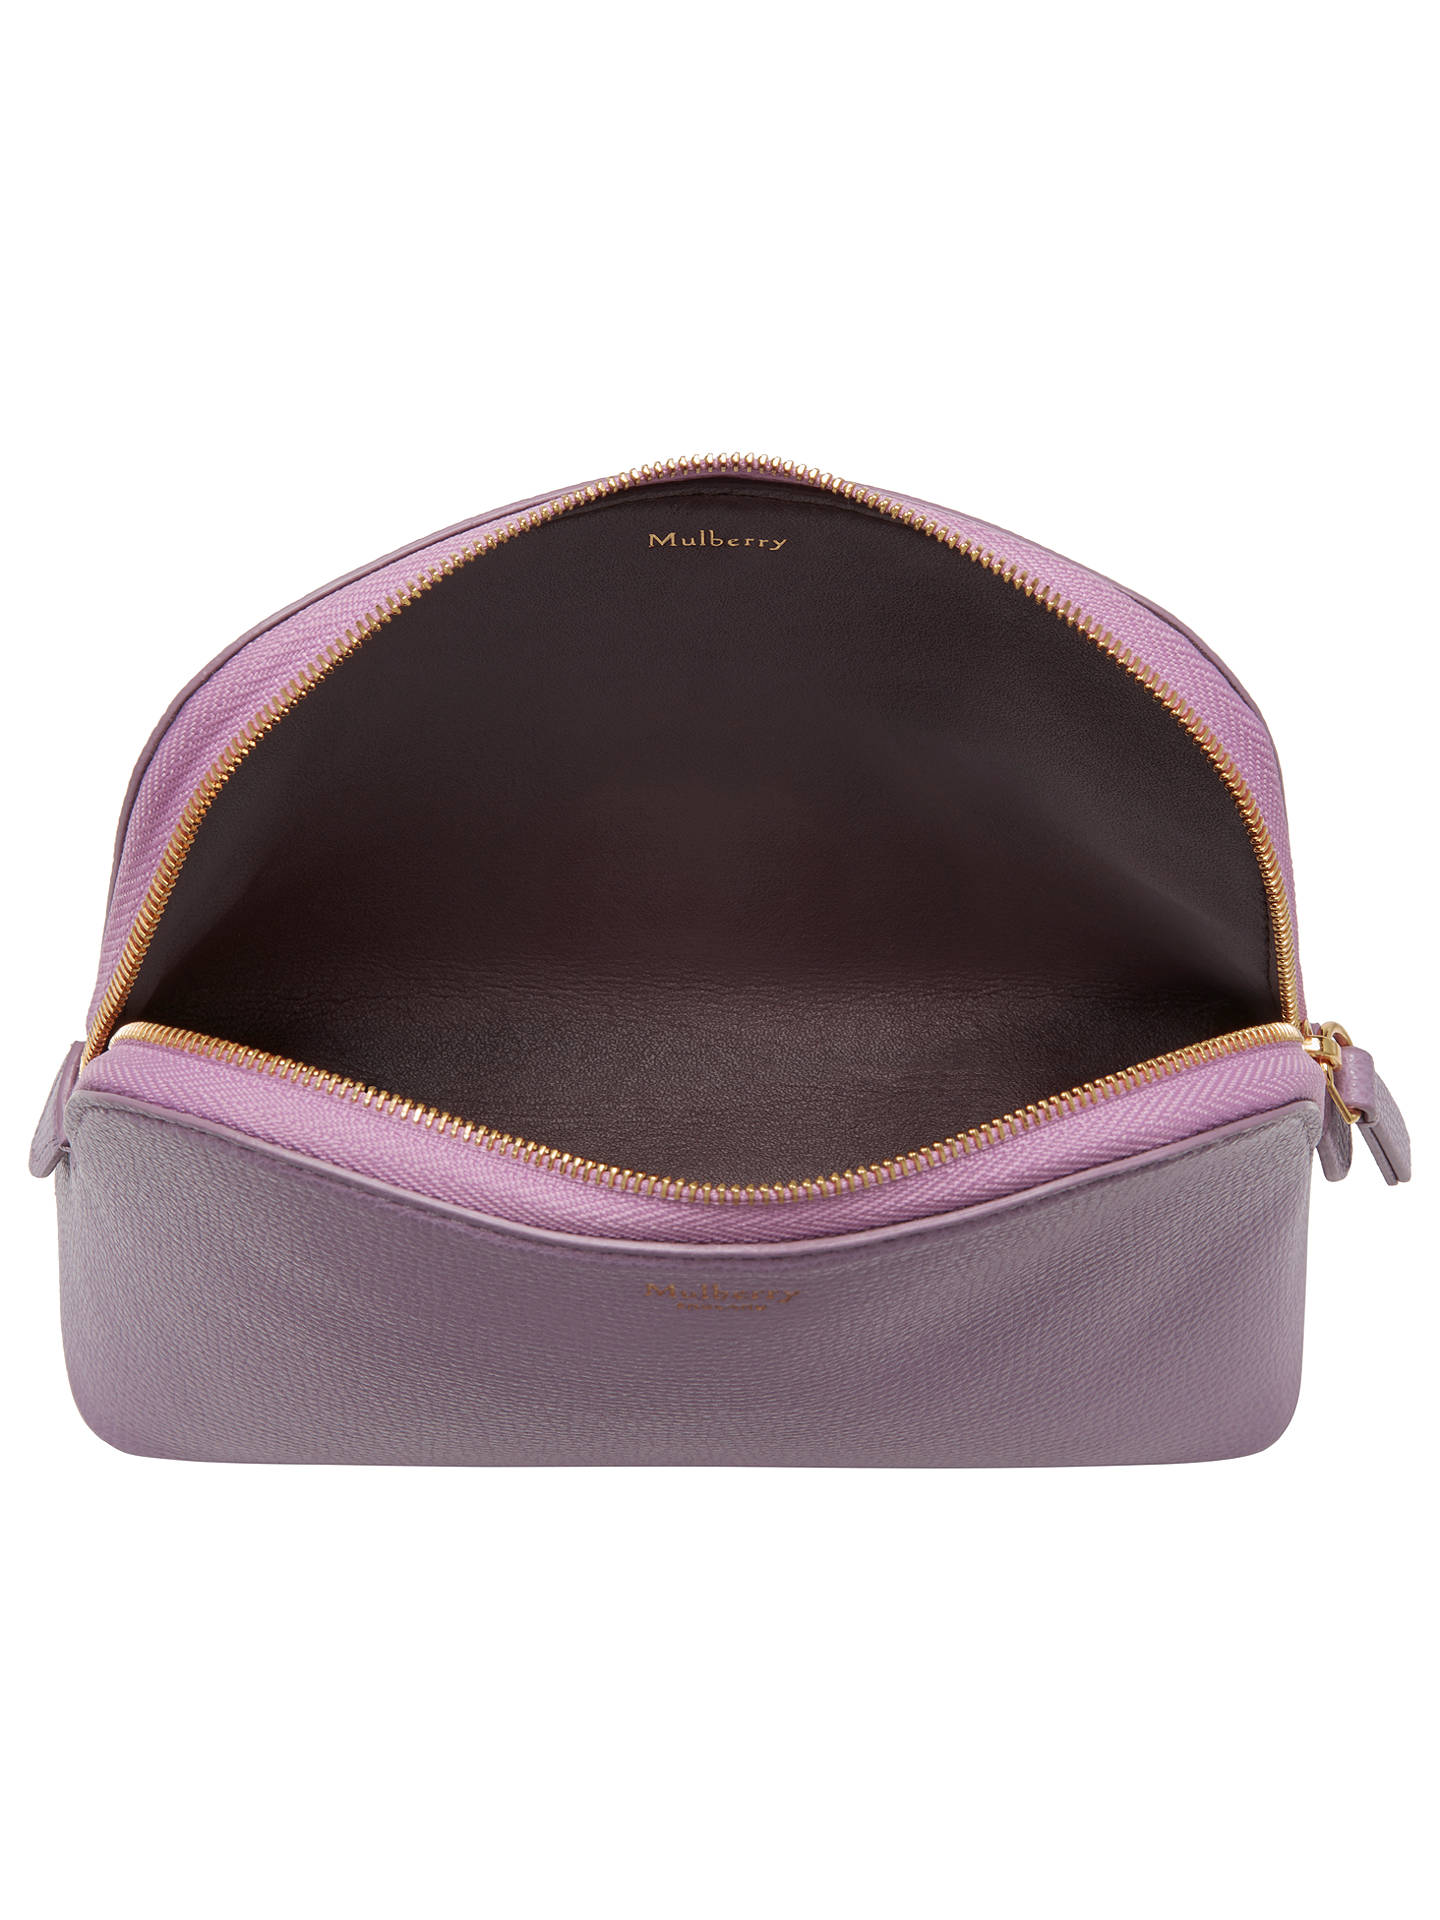 BuyMulberry Cross Grain Leather Cosmetic Pouch, Lilac Online at johnlewis.com